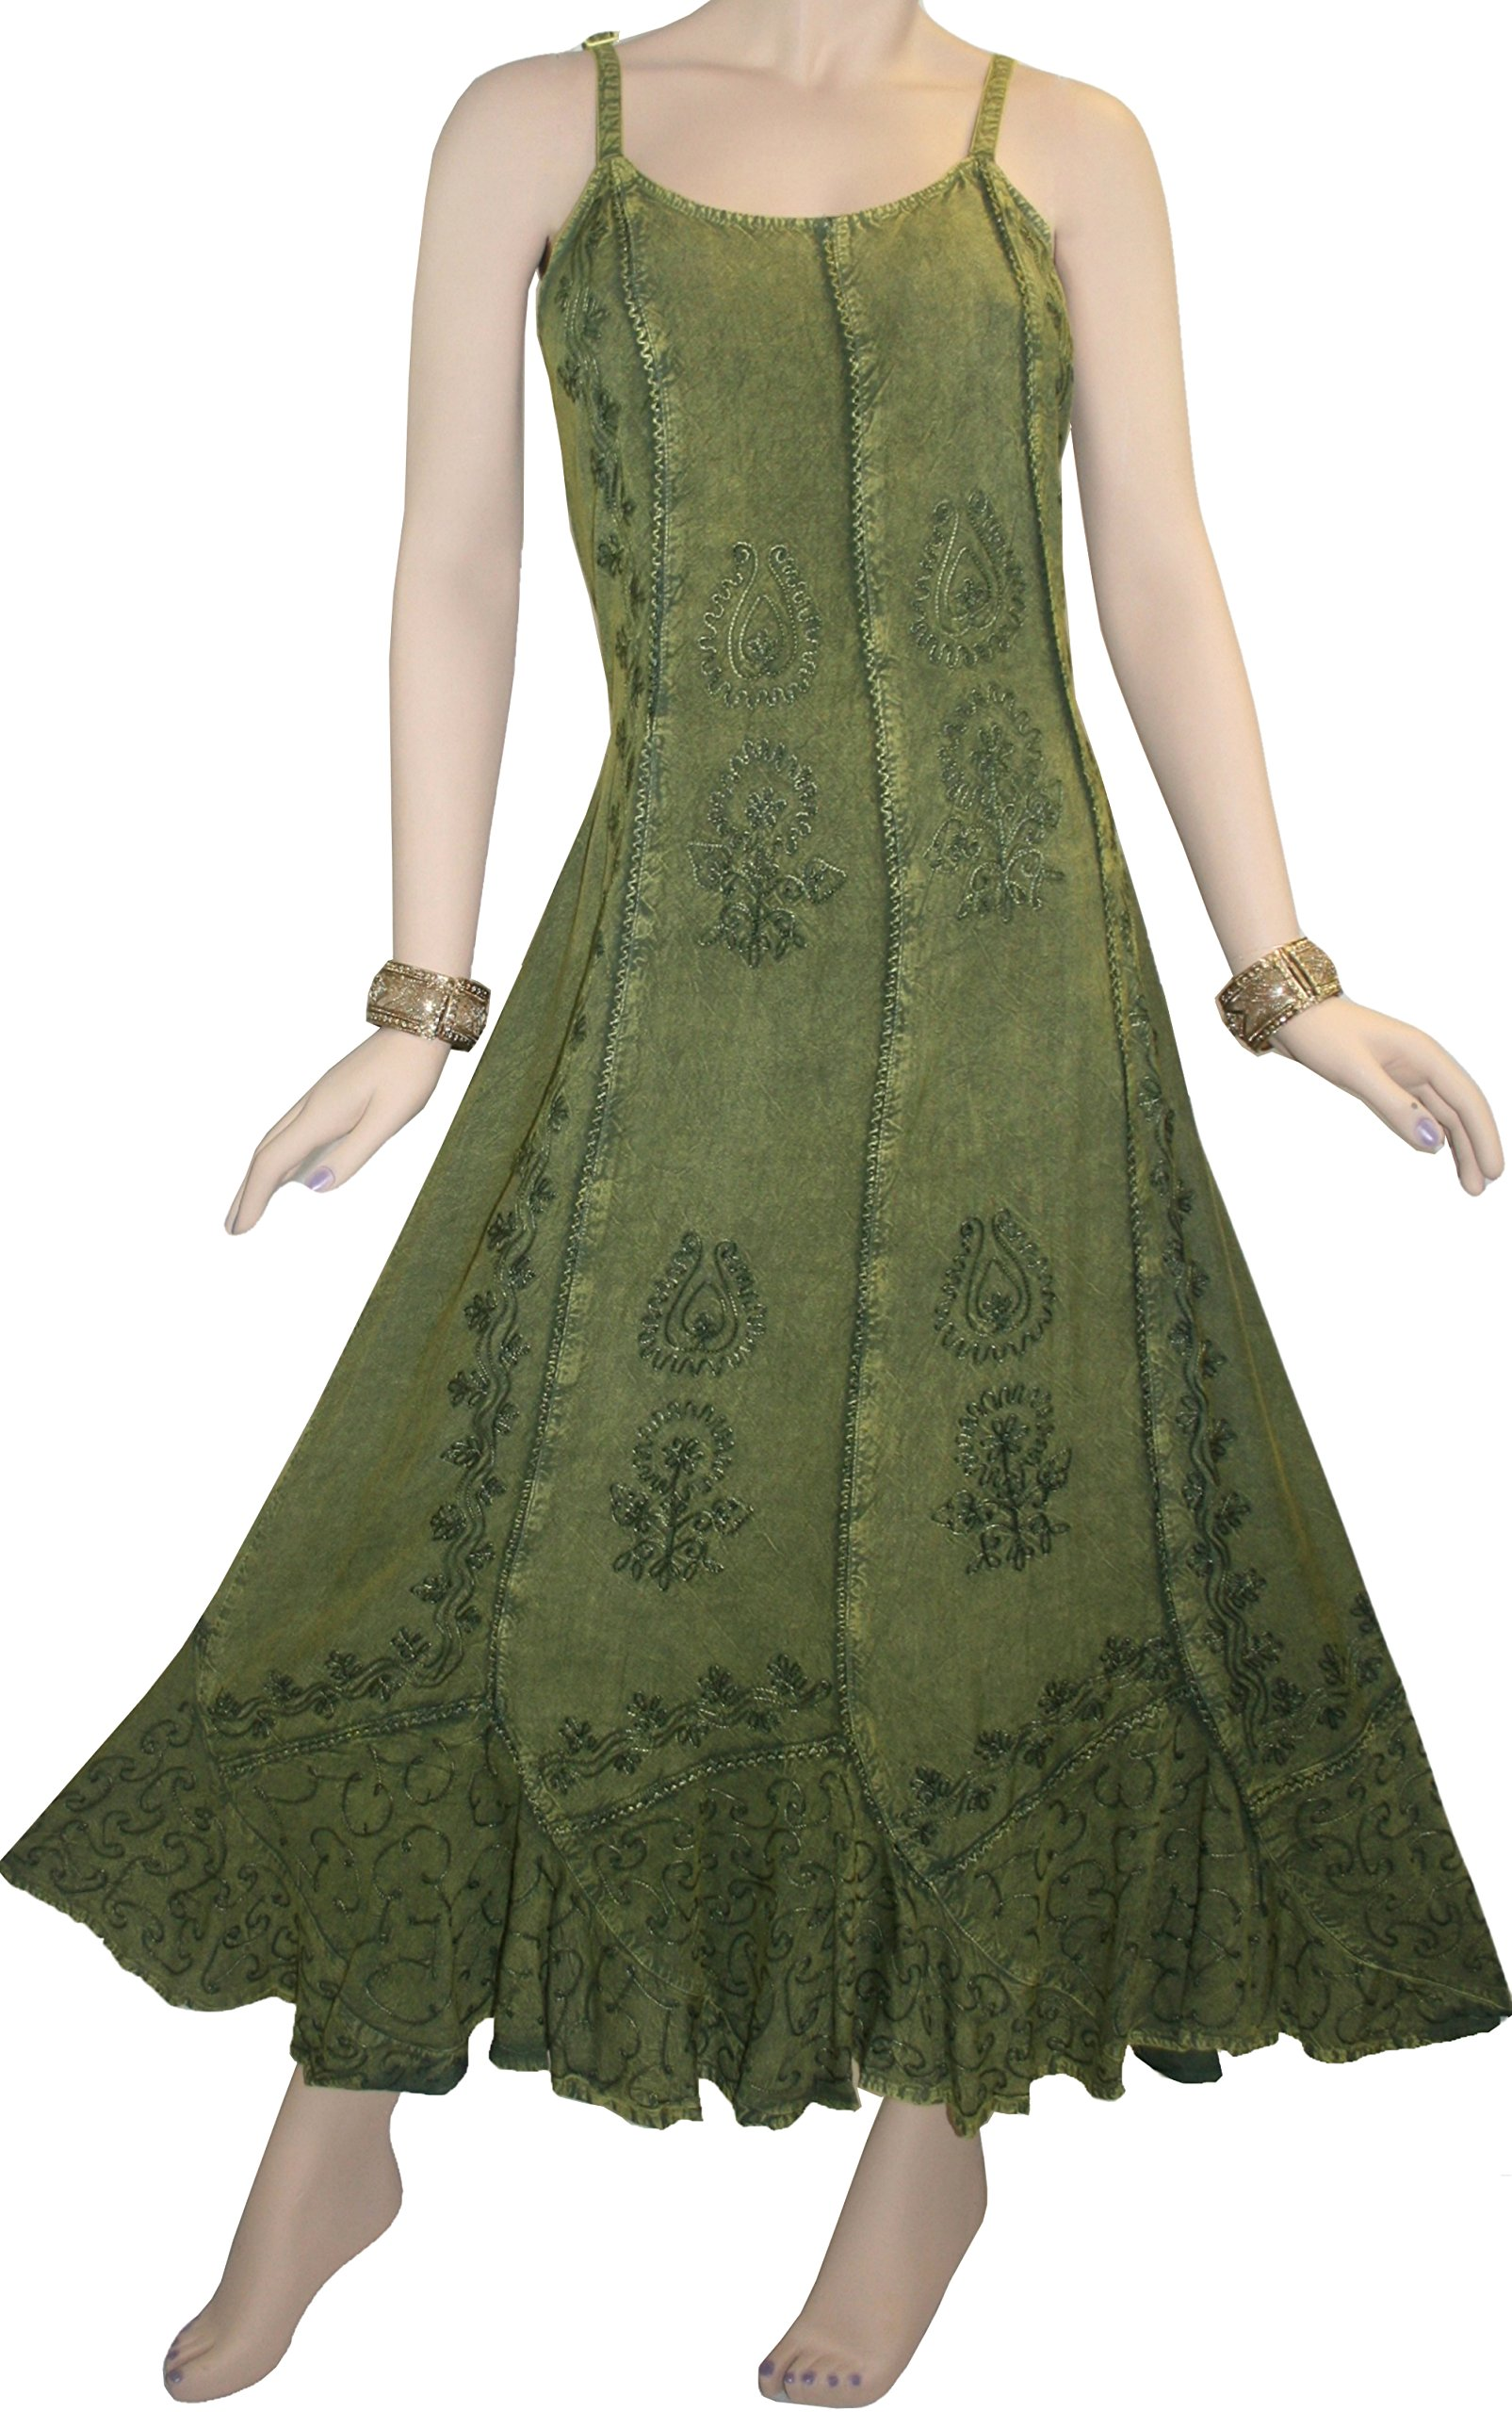 1005 DR Gypsy Sexy Summer Scalloped Dress [Green; M]